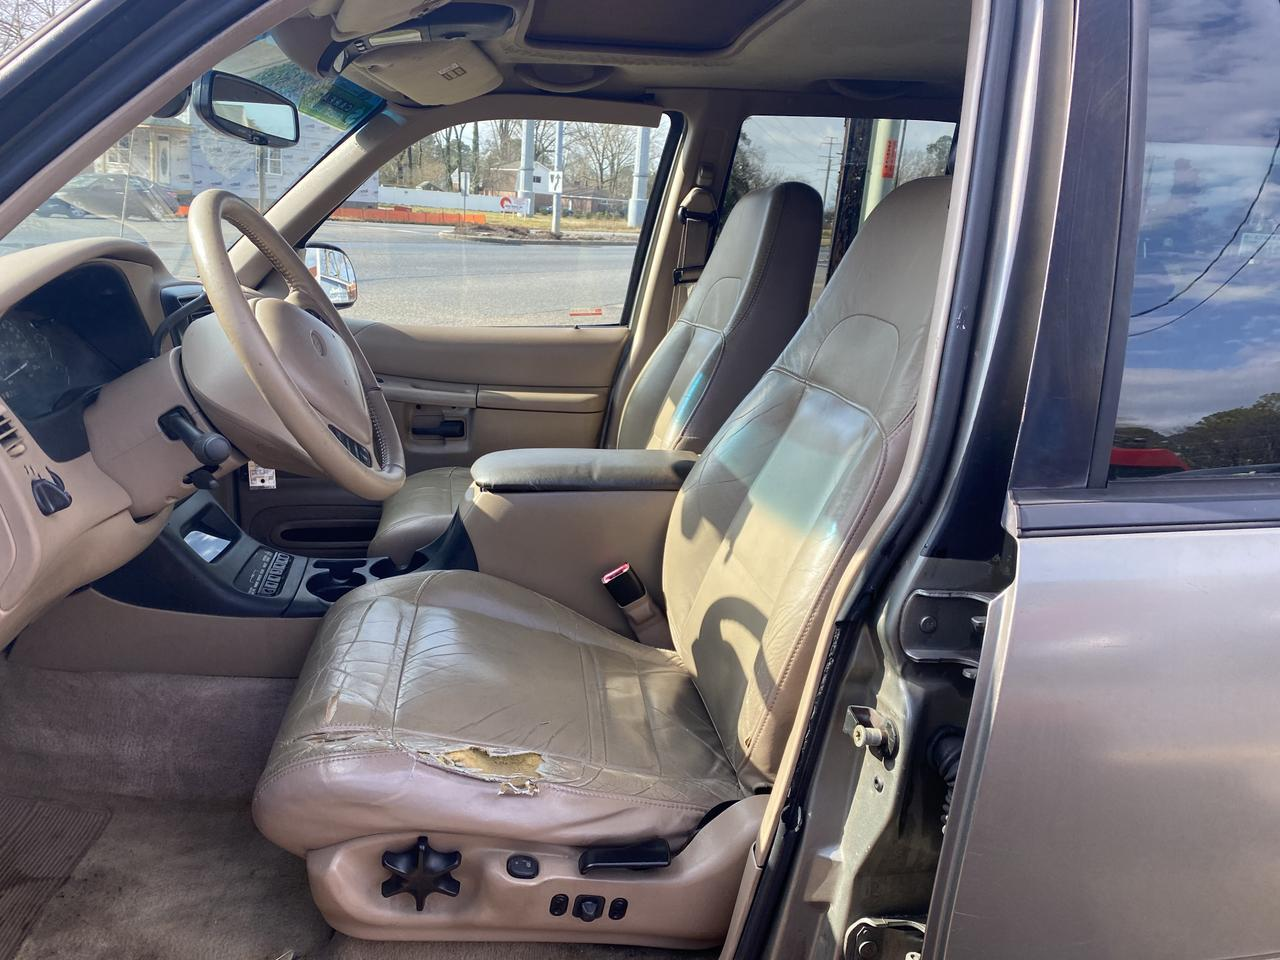 2000 FORD EXPLORER EDDIE BAUER, WHOLESALE TO THE PUBLIC, LEATHER, HEATED SEATS, PARKING SENSORS, SUNROOF! Norfolk VA